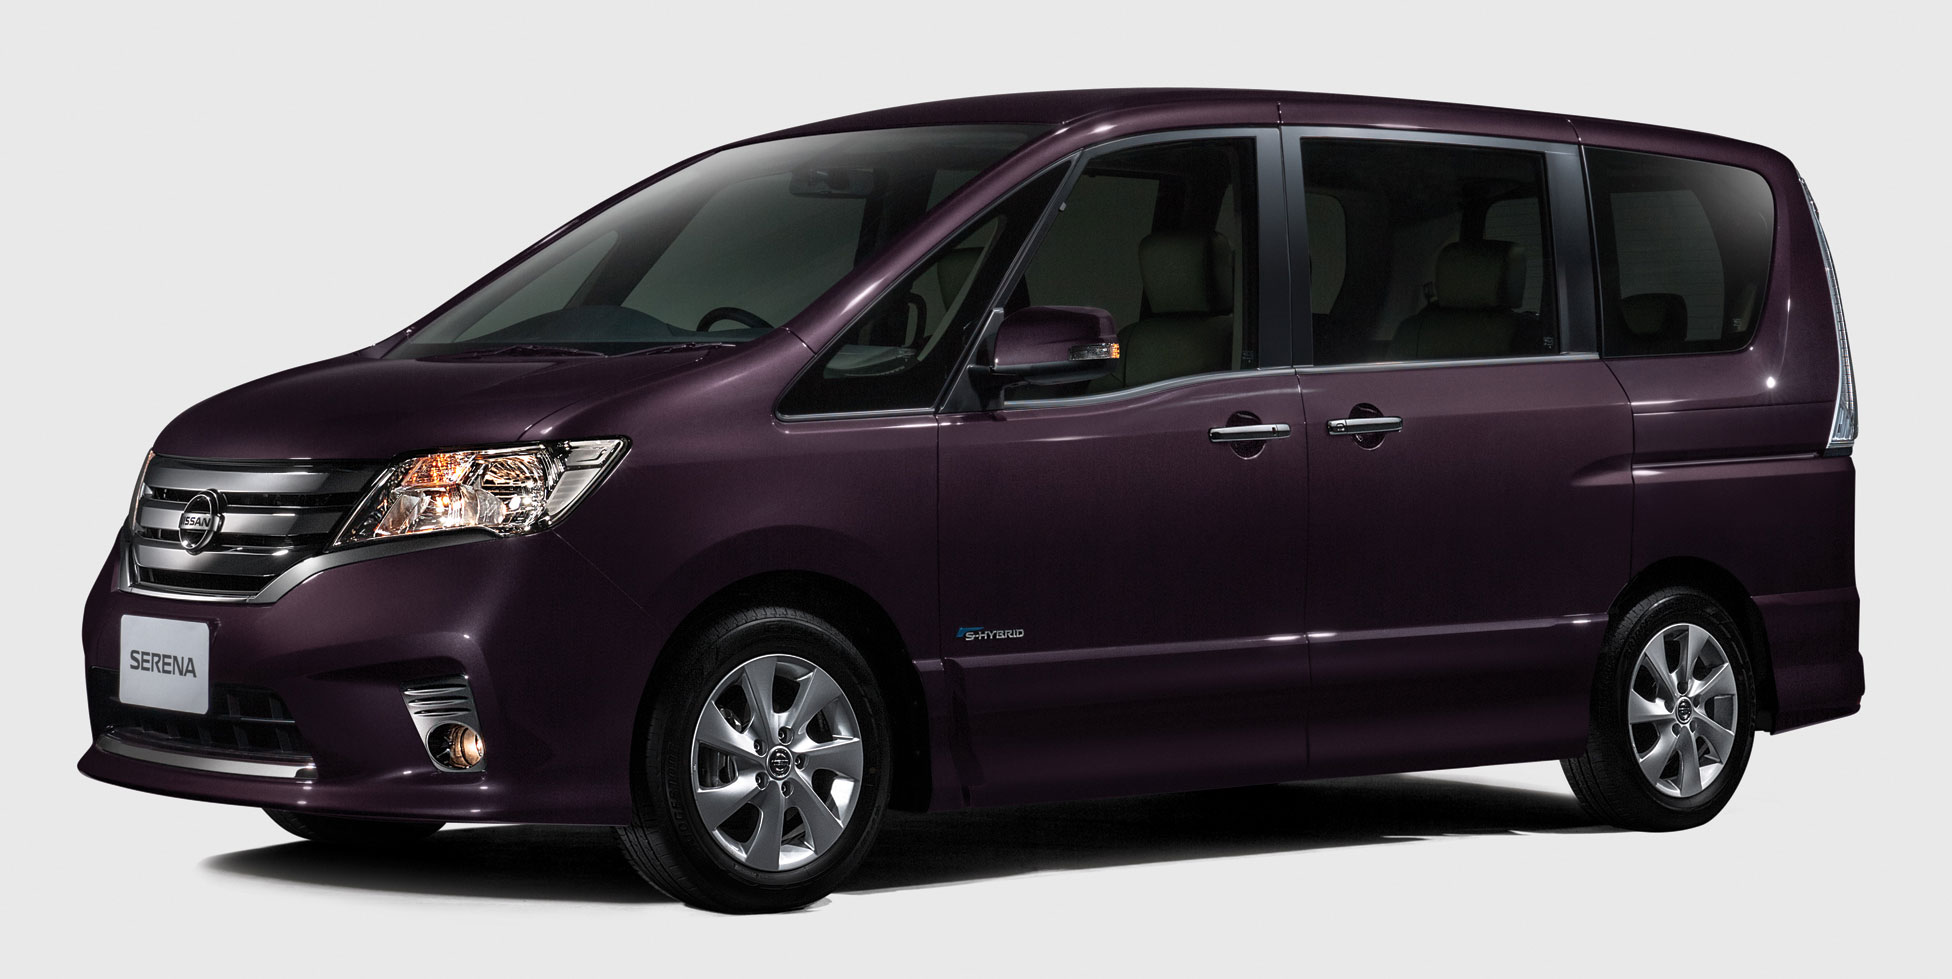 Nissan 2018 >> Nissan Serena S-Hybrid launched in Malaysia – 8-seater MPV, CBU from Japan, RM149,500 Paul Tan ...